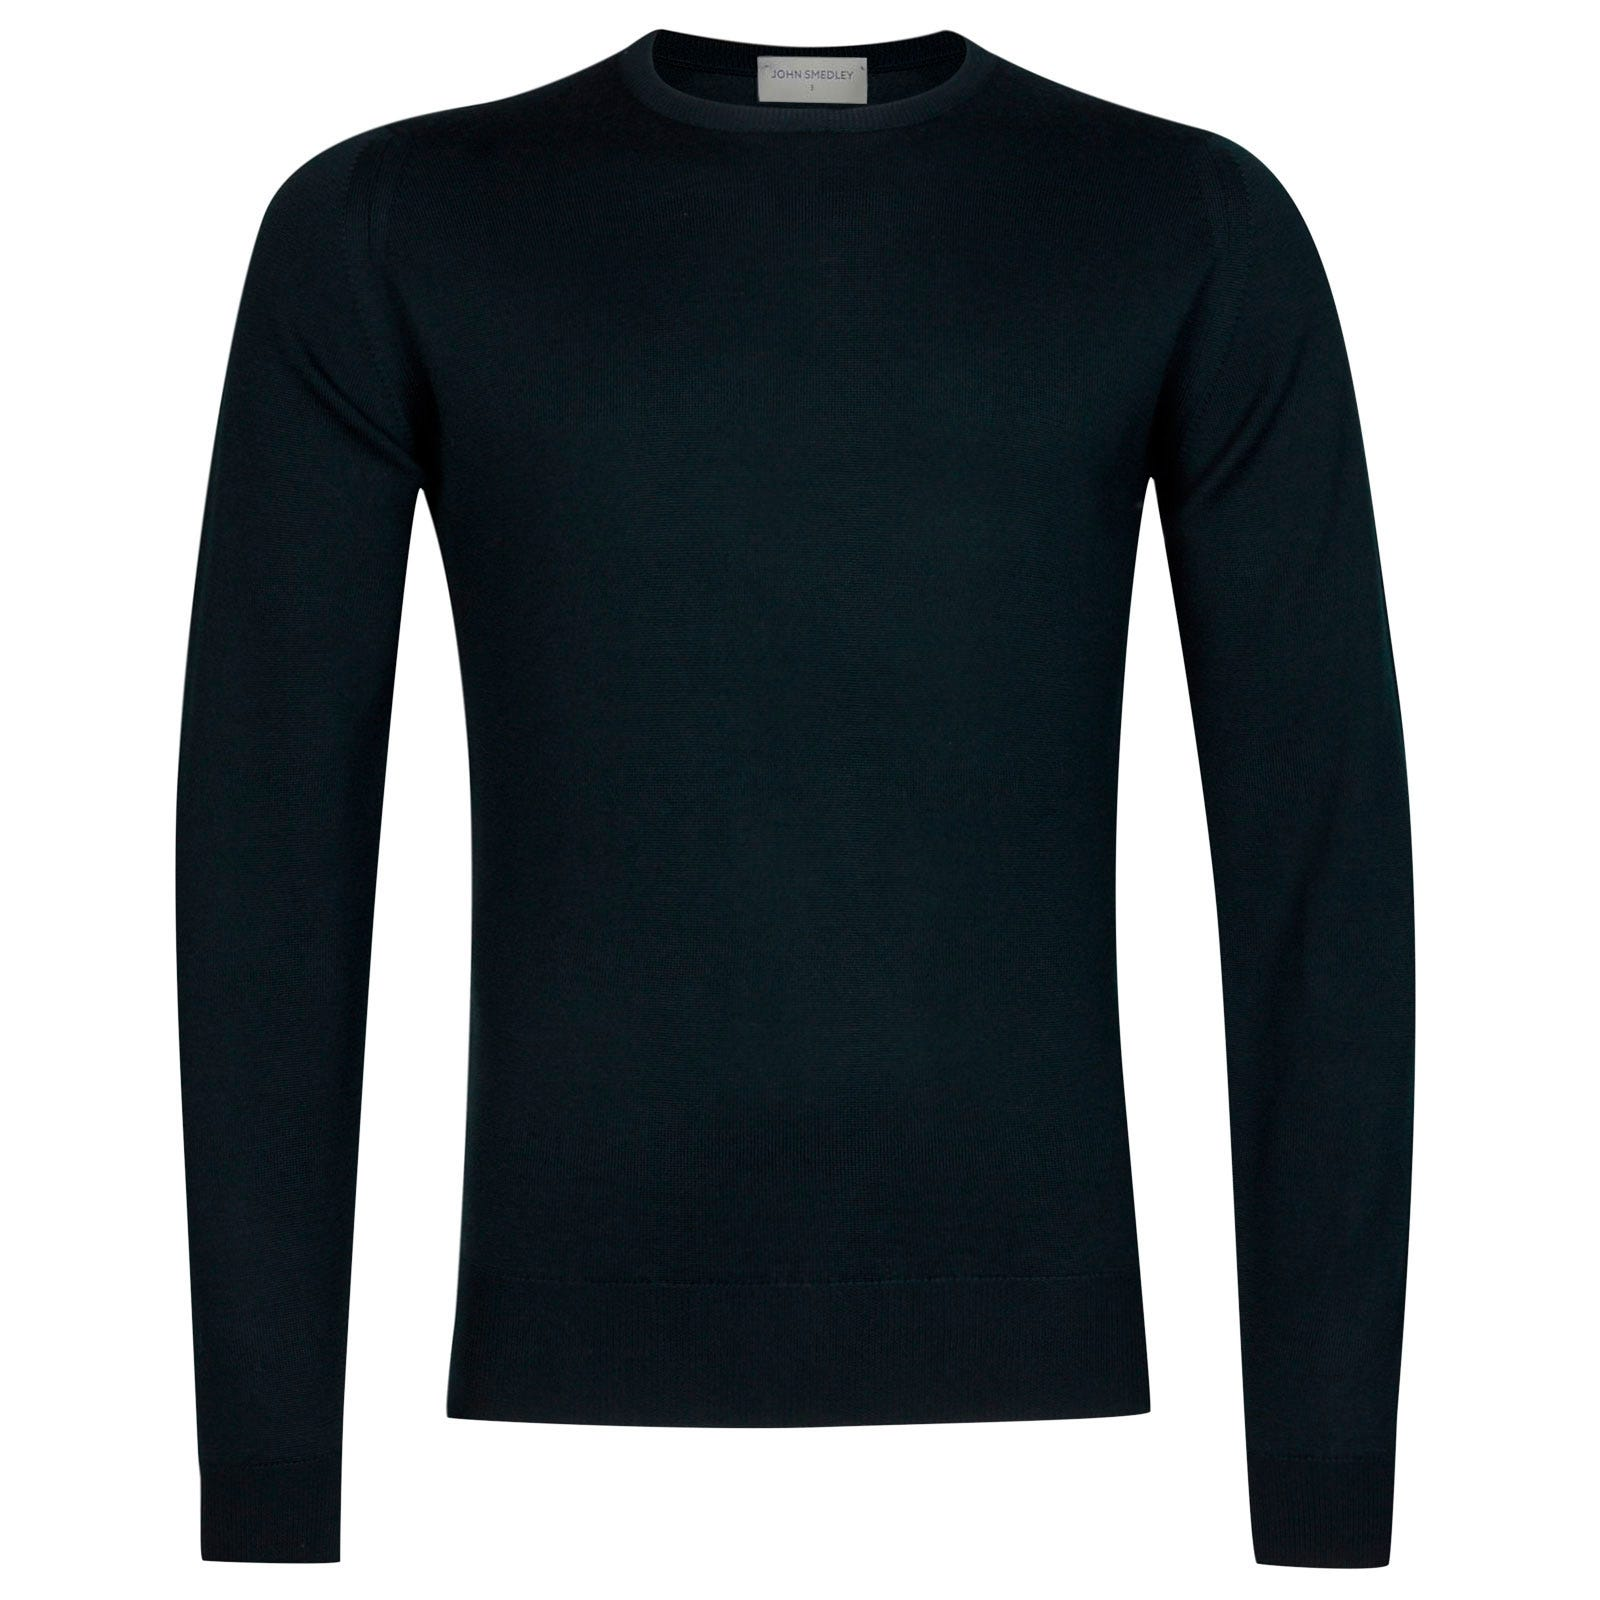 John Smedley Farhill Merino Wool Pullover in Racing Green-L